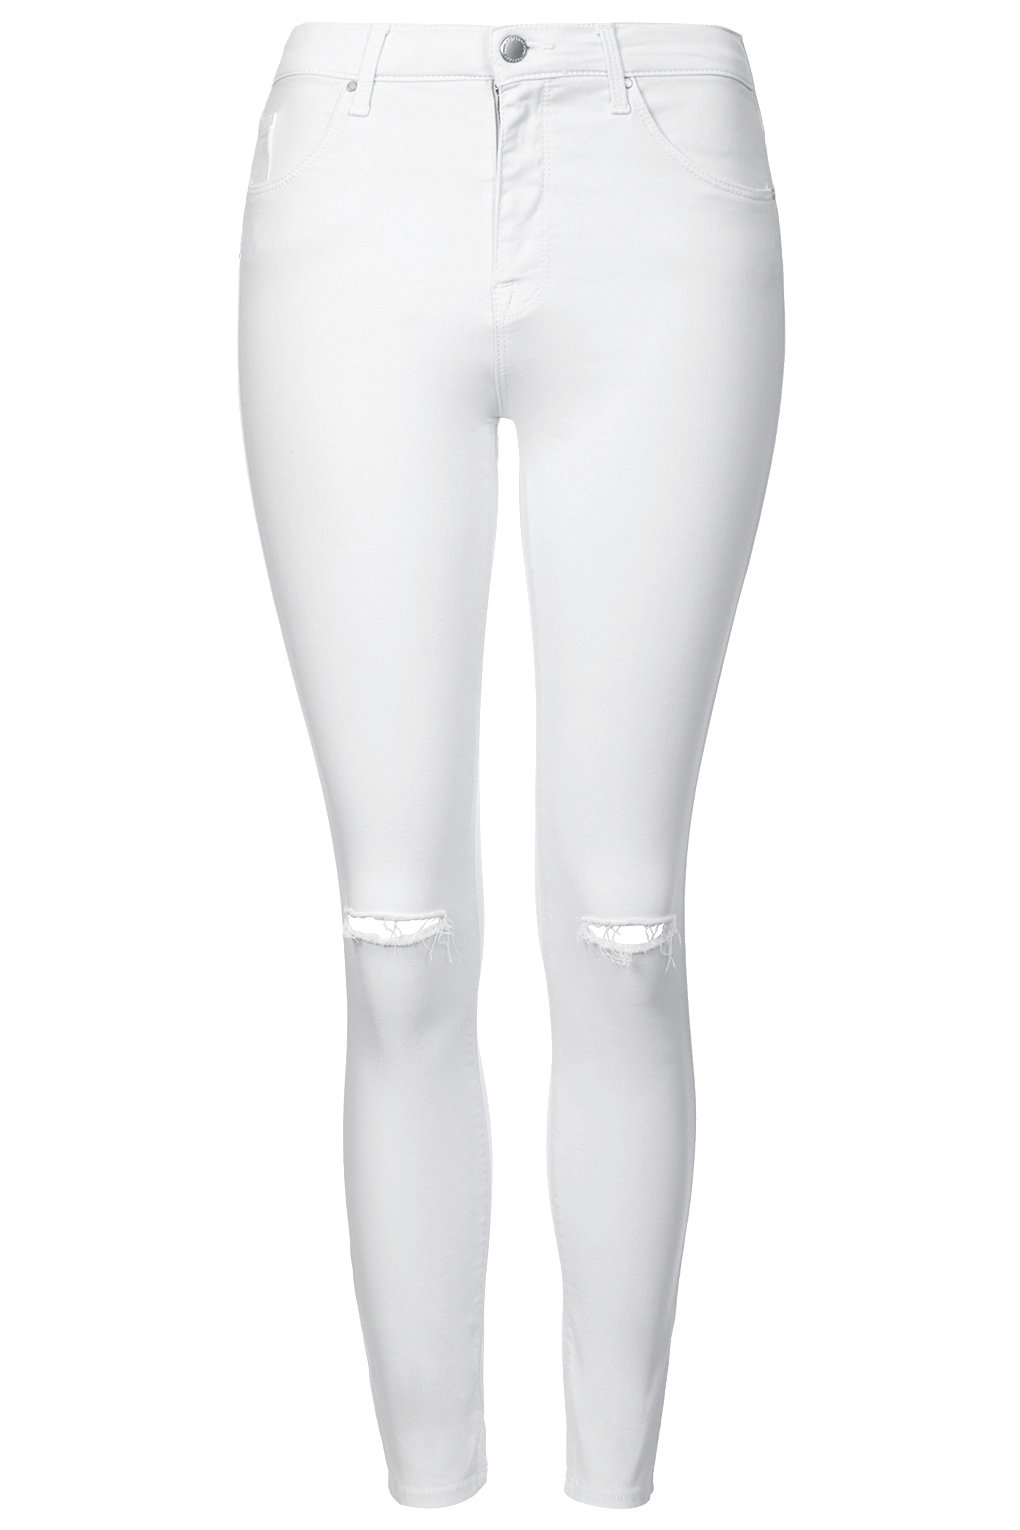 MOTO WINTER WHITE RIP LEIGH JEANS.